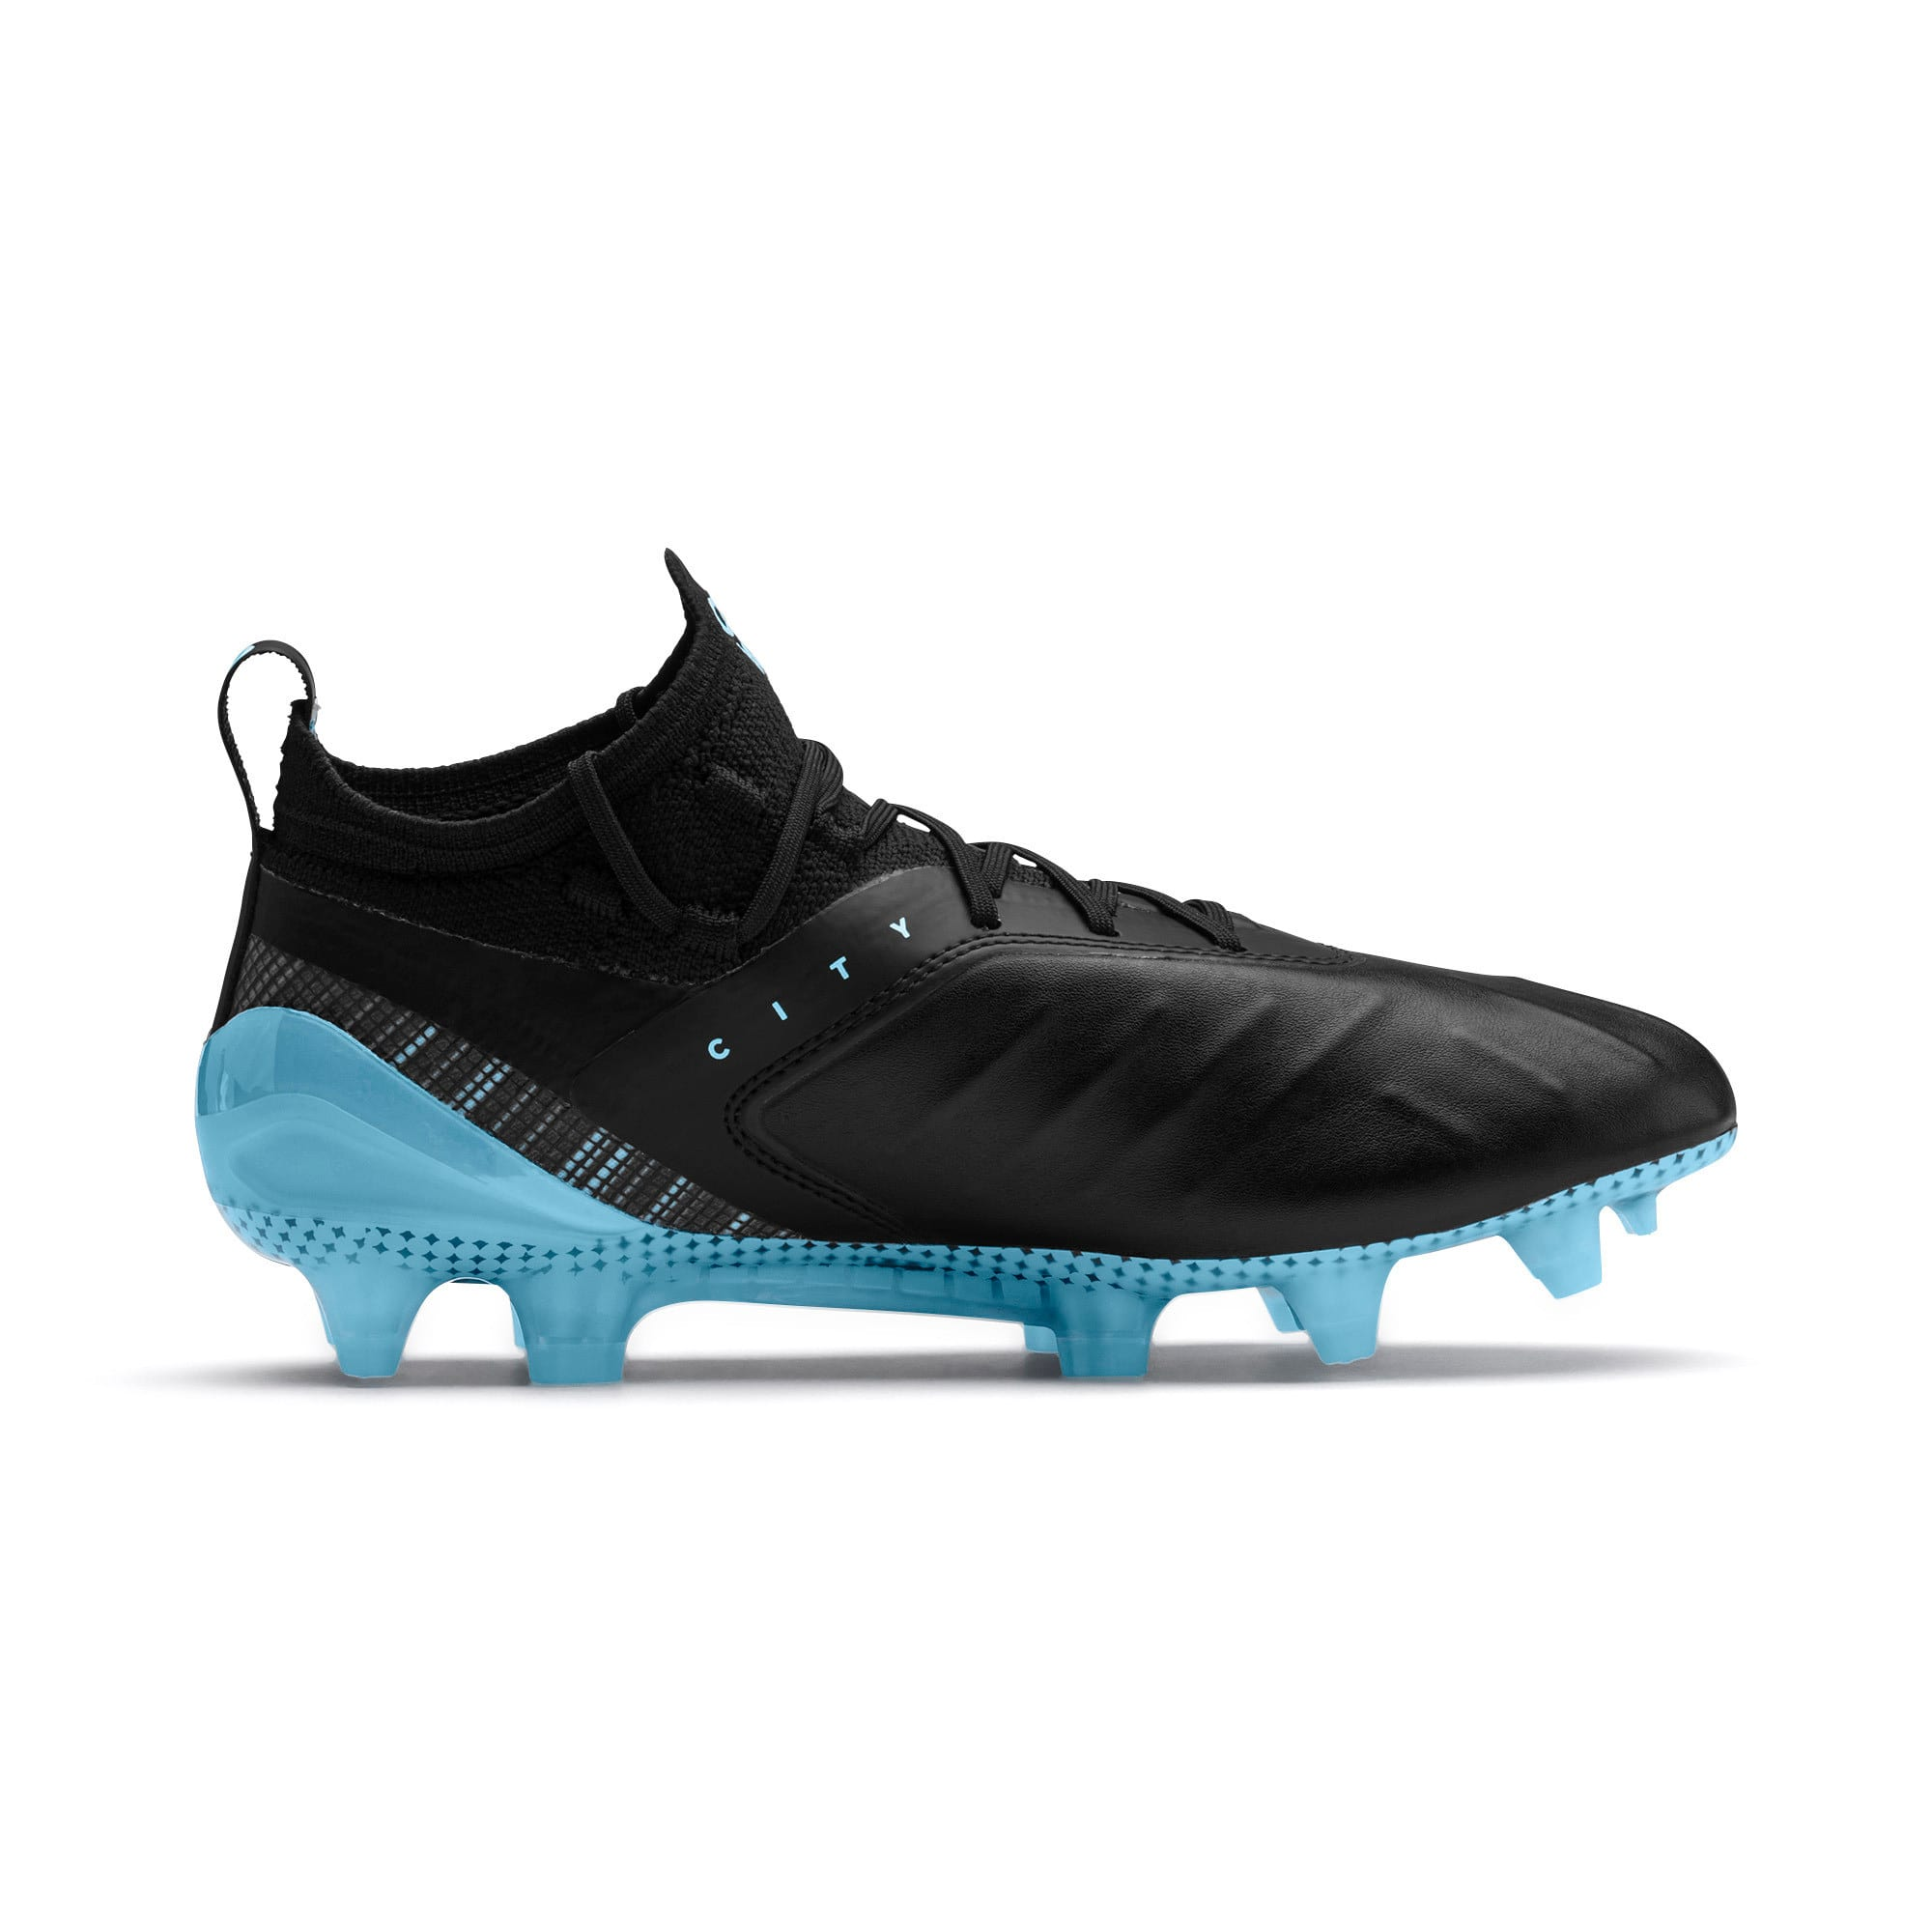 Imagen en miniatura 5 de Botas de fútbol PUMA ONE 5.1 City Youth, Black-Sky Blue-Puma White, mediana